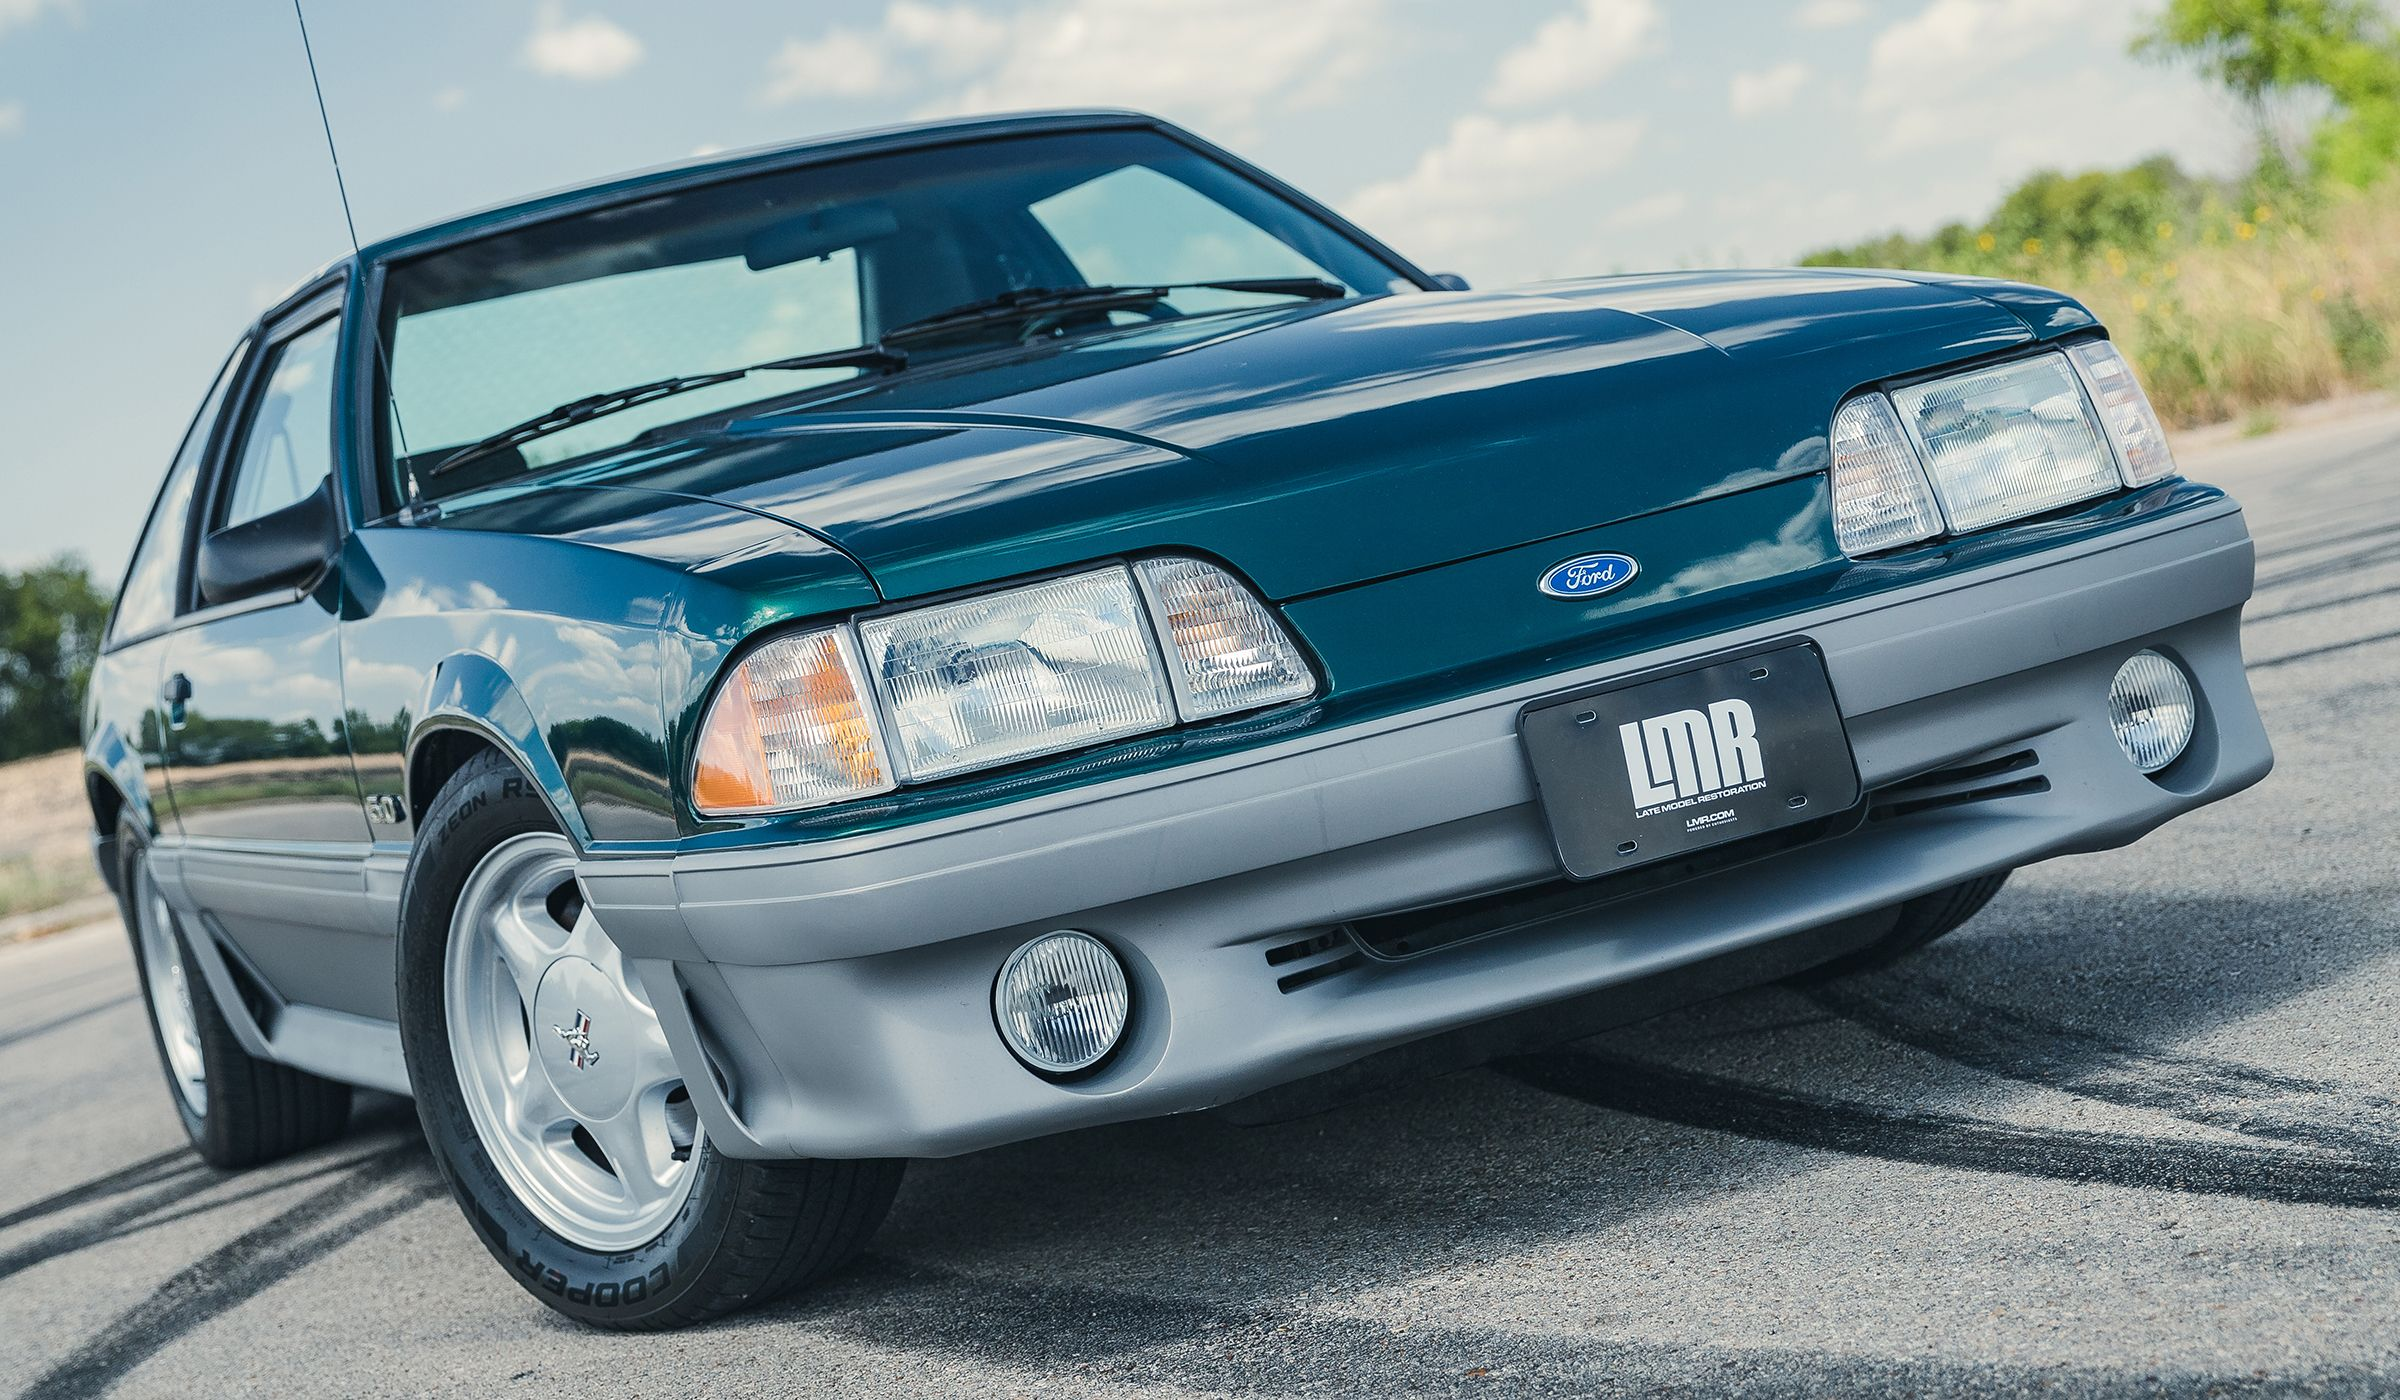 Mustang Nicknames By Generation - Mustang Nicknames By Generation